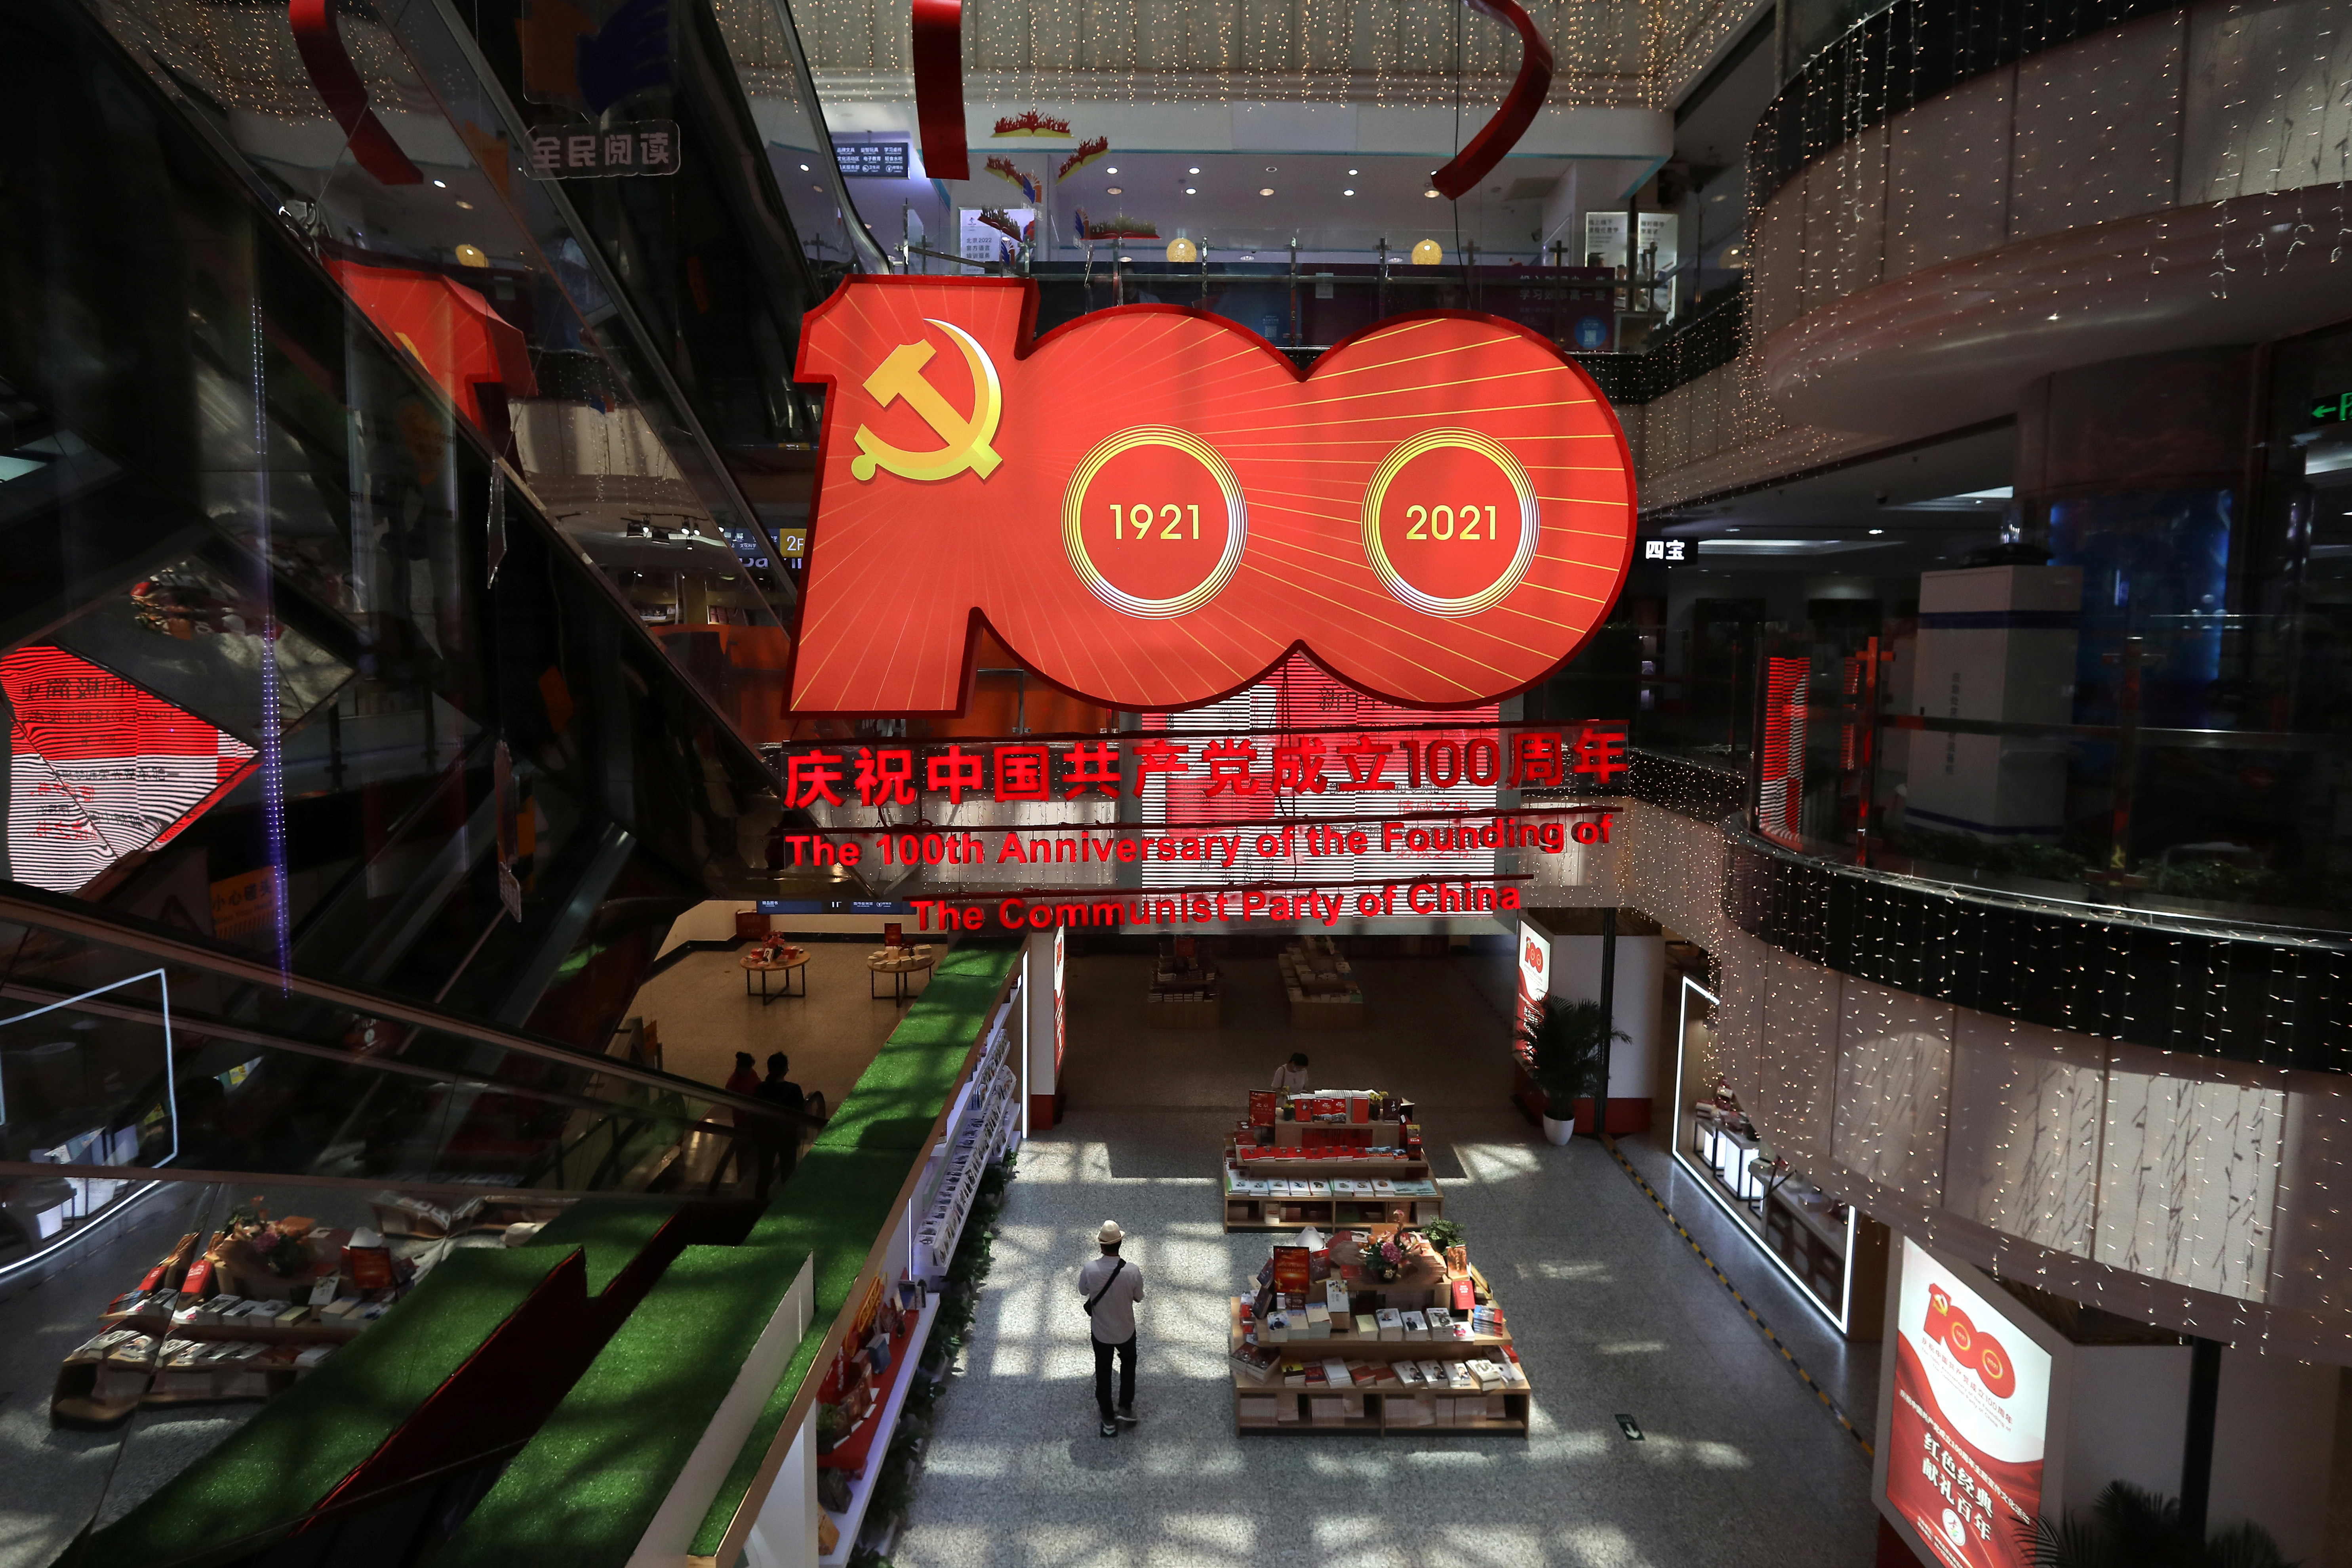 A giant decoration marking the 100th anniversary of the founding of the Chinese Communist Party of China, is seen inside a bookstore in Beijing, China June 21, 2021.  REUTERS/Tingshu Wang